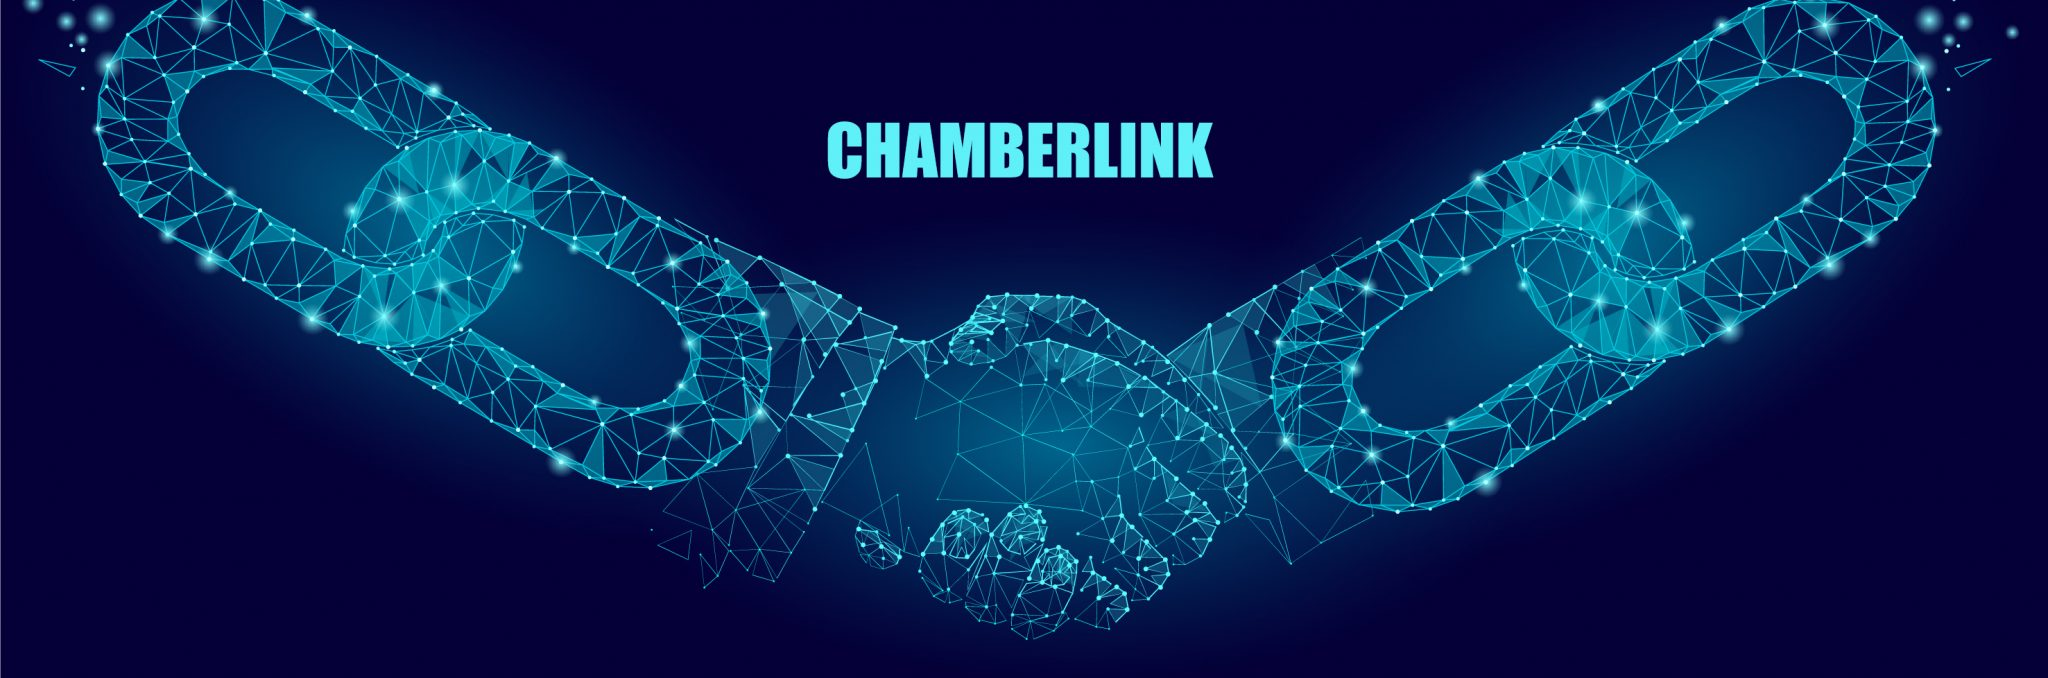 Small Organizations Doing Big Things in ChamberLink